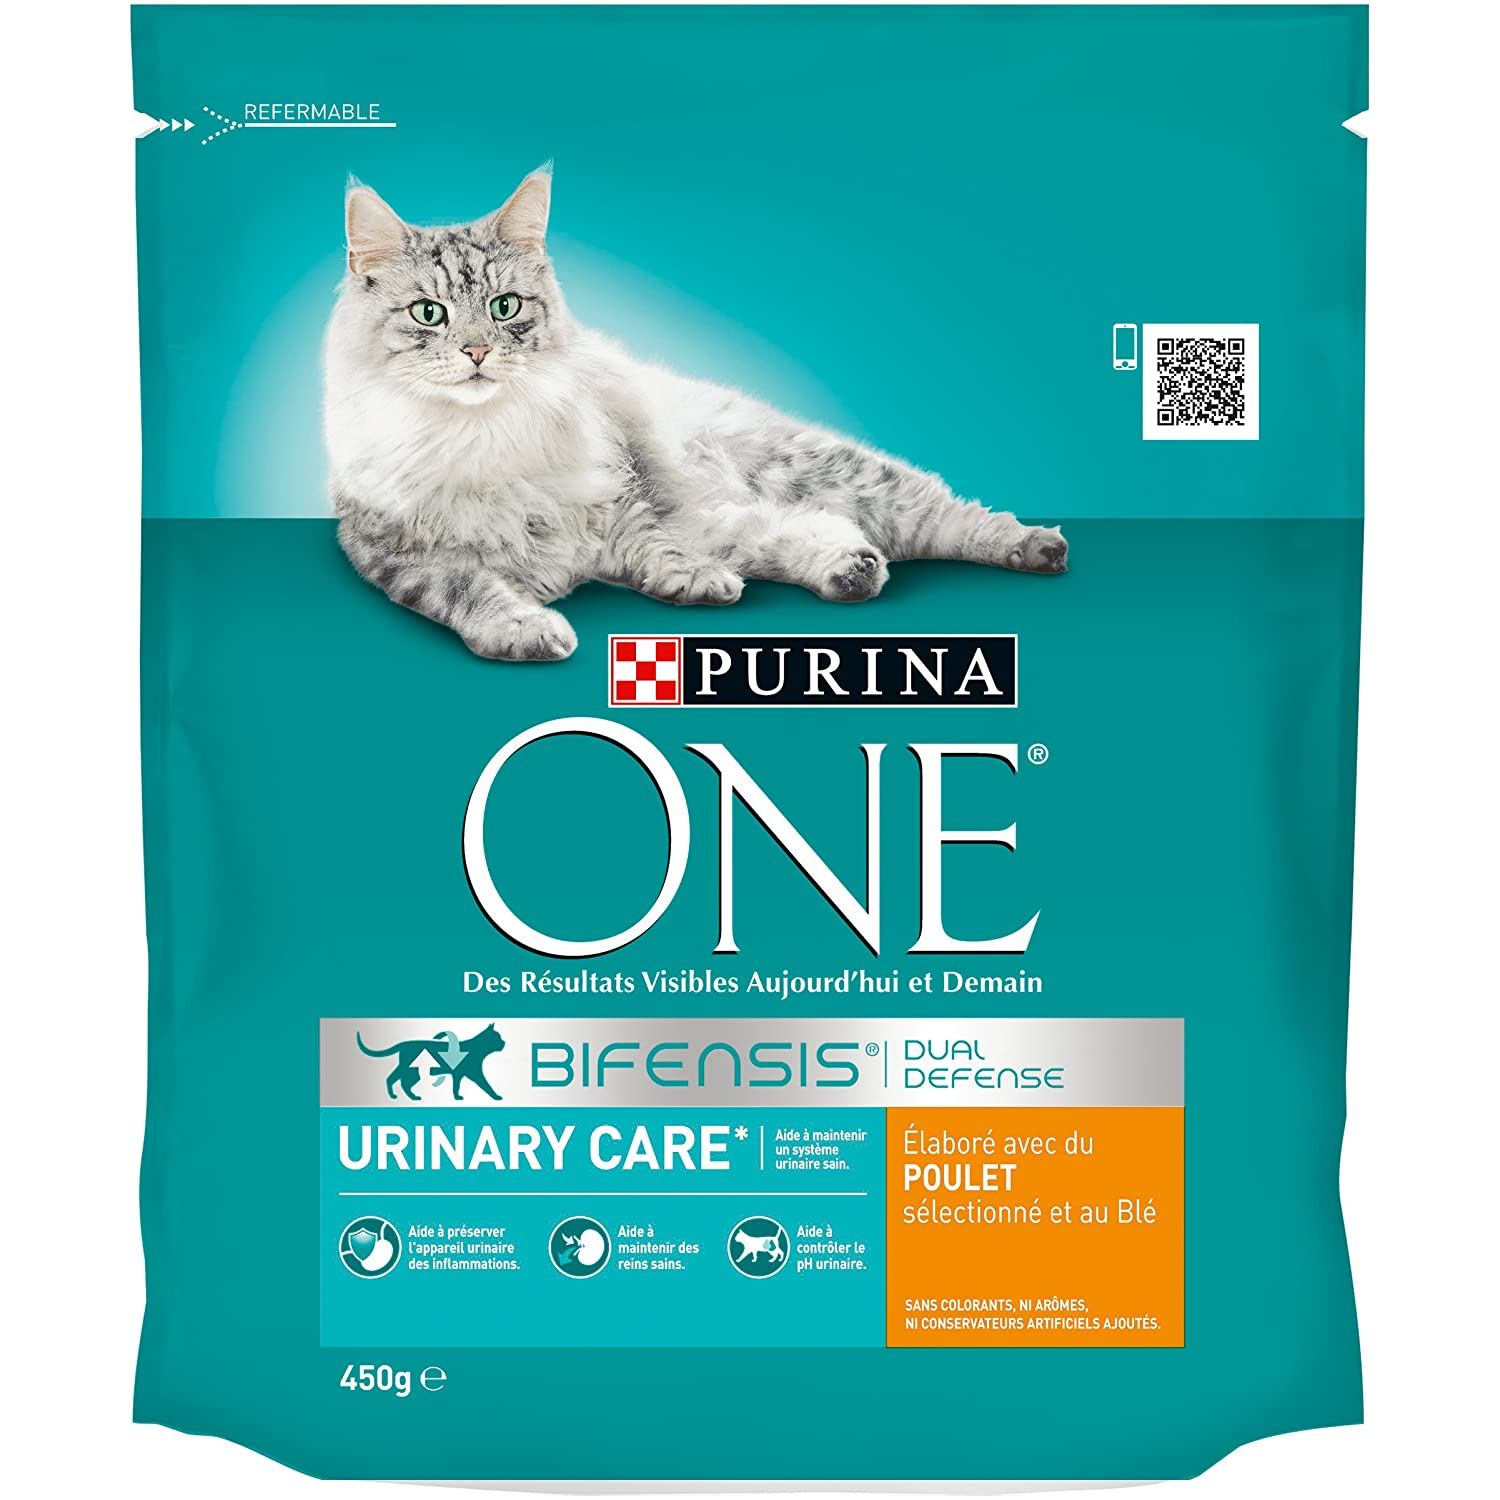 Purina One Urinary Care - au Poulet et au Blé - 450g - Croquettes pour Chat Adulte One Chat PUR771293PCB10